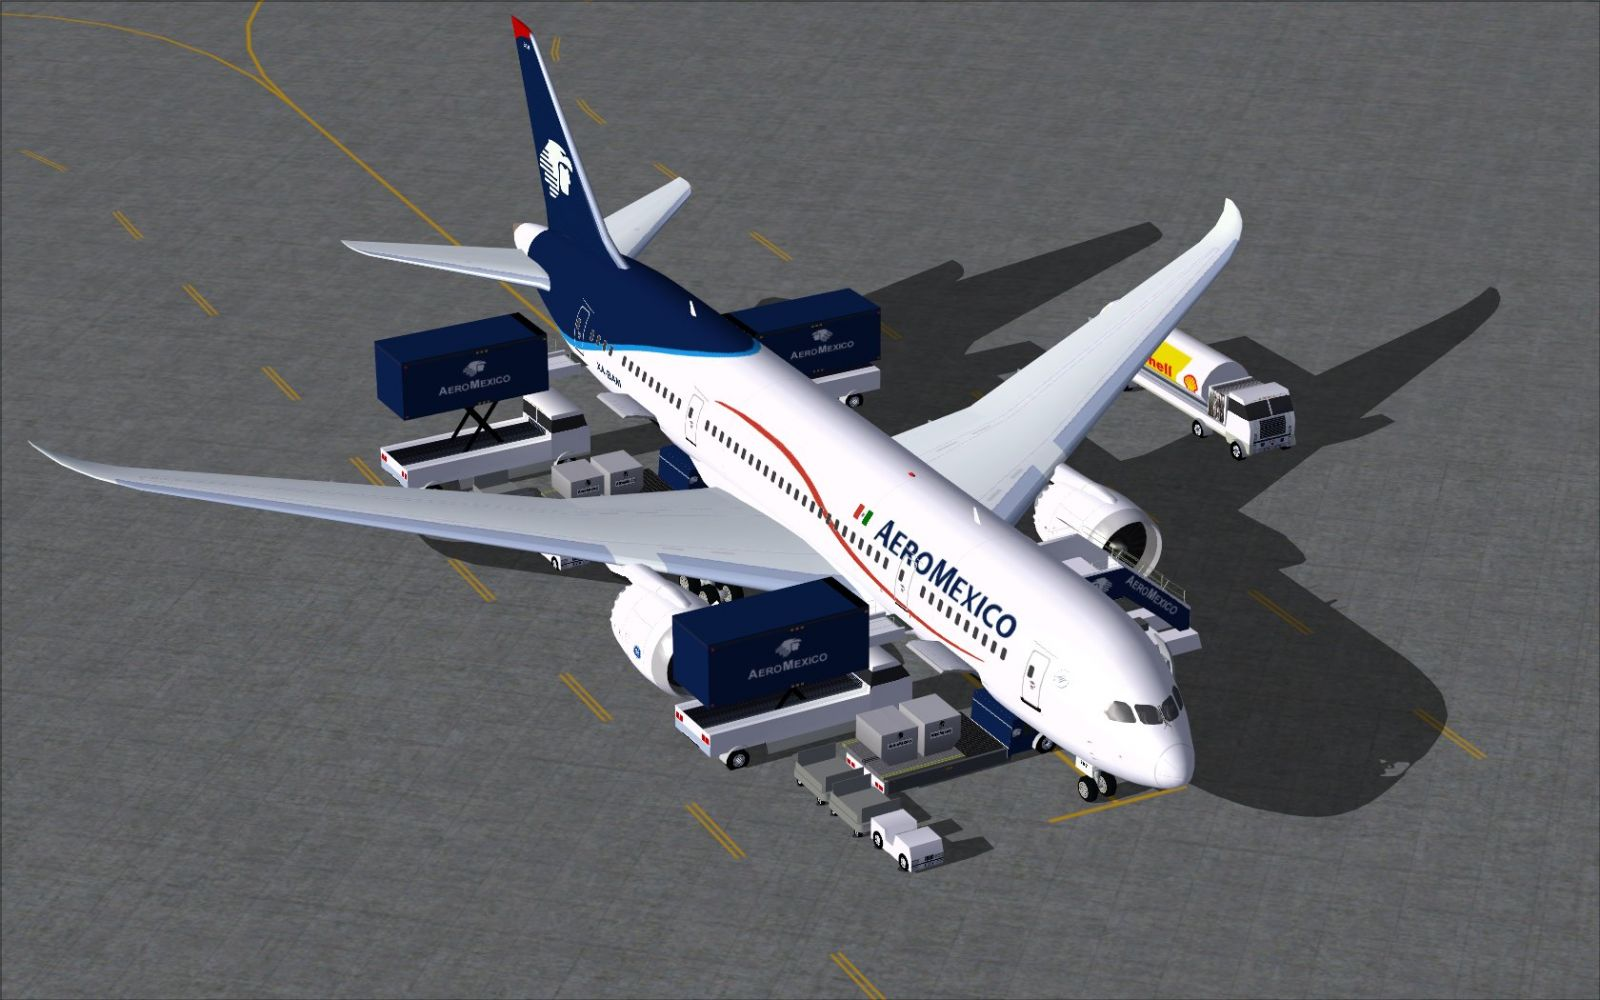 http://flyawaysimulation.com/media/images1/images/aeromexico-boeing-787-8-fsx2.jpg